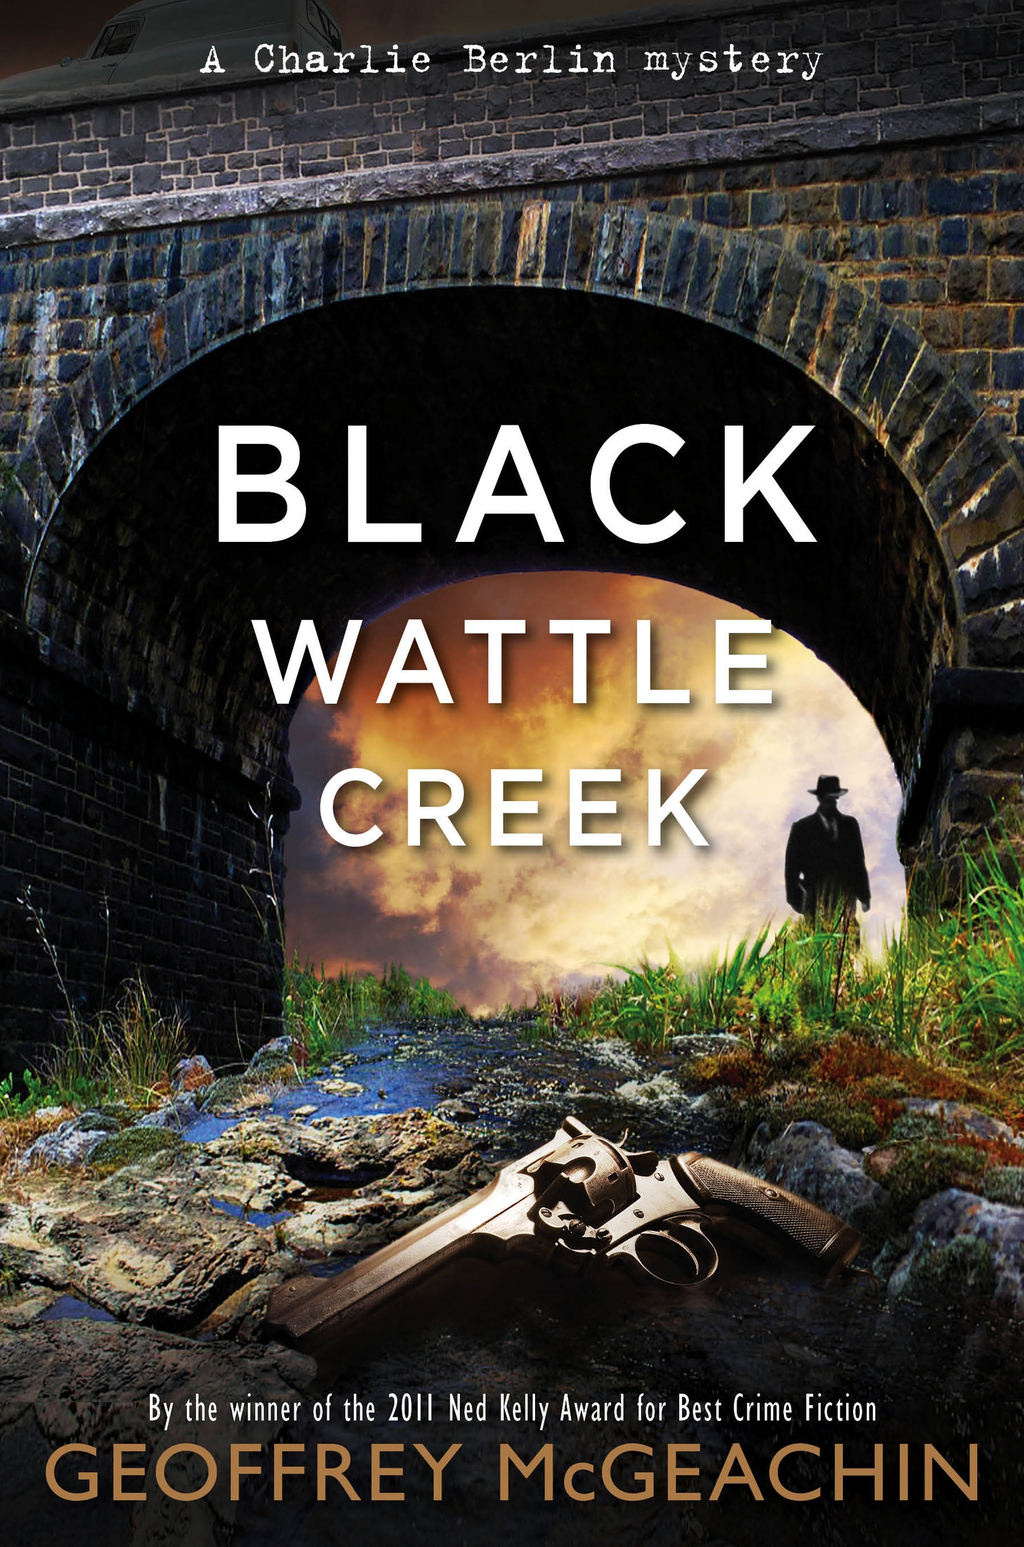 Blackwattle Creek By: Geoffrey McGeachin